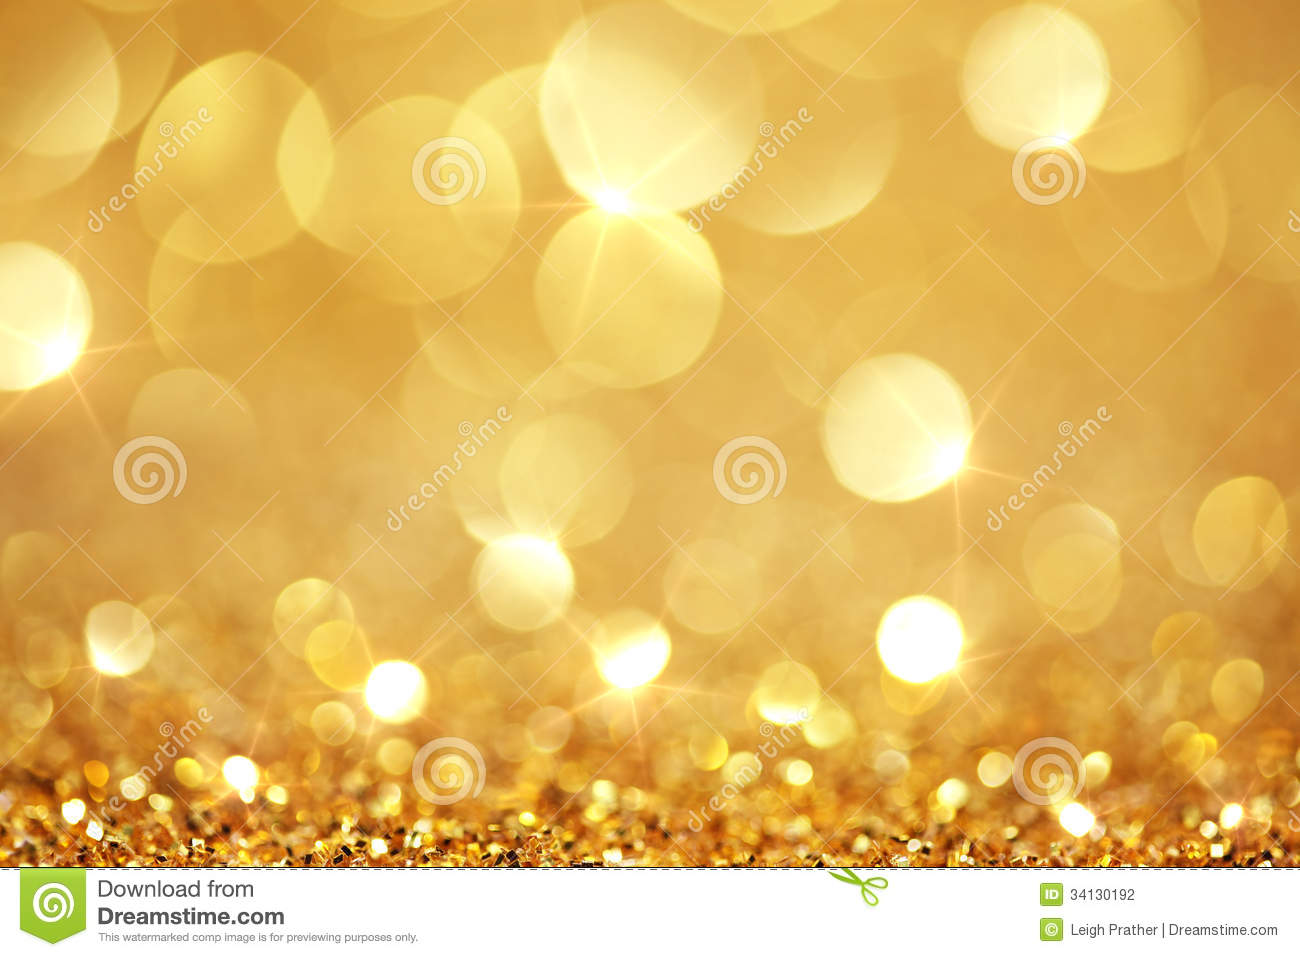 77 gold color background on wallpapersafari